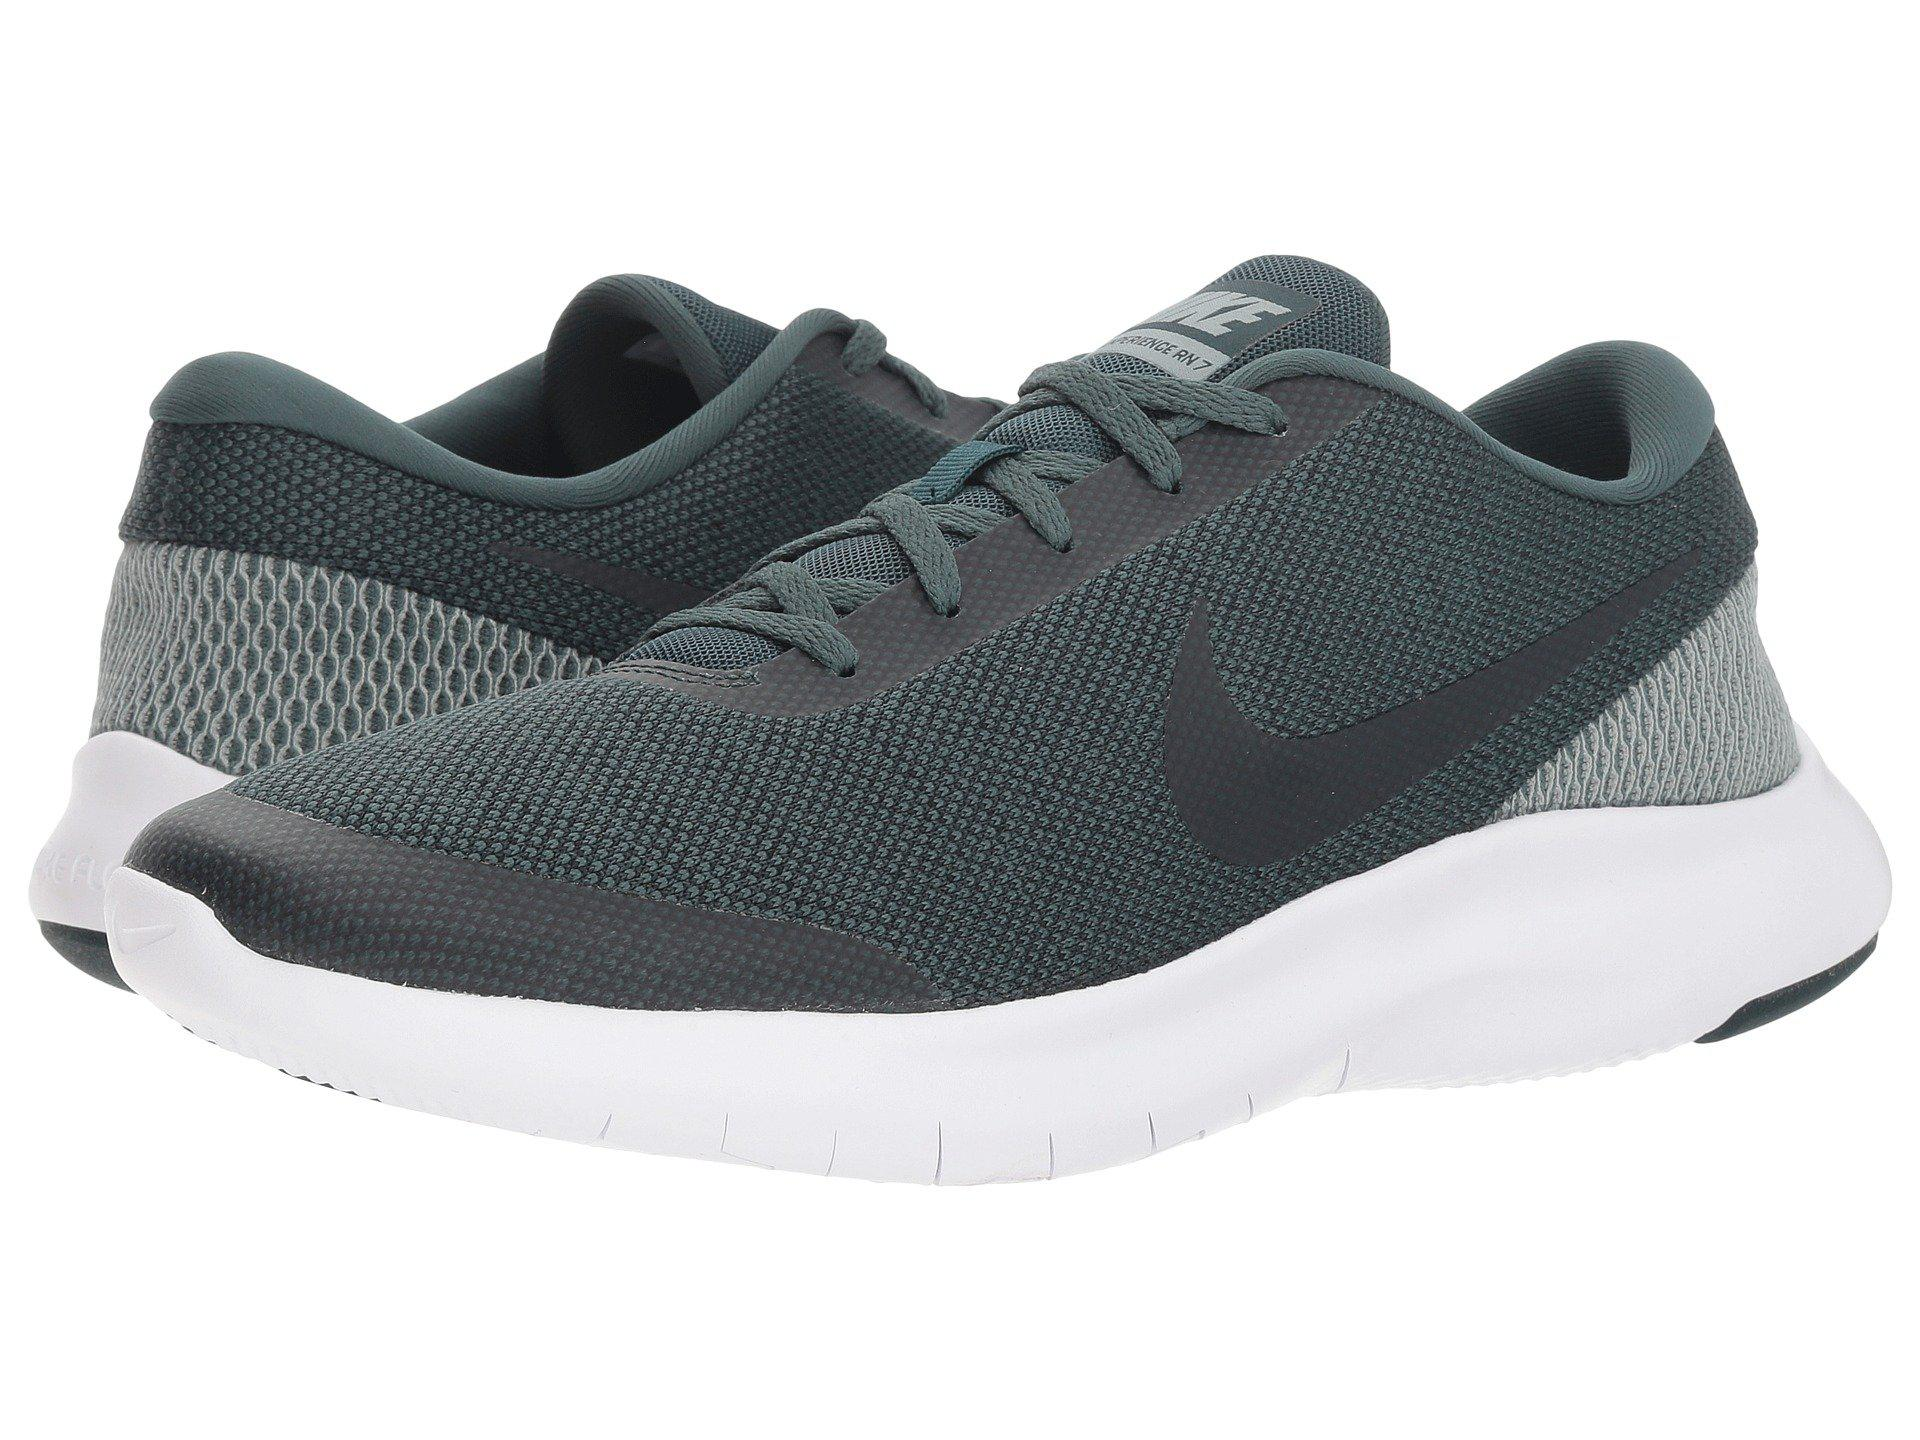 super popular 36e2f 61c21 Nike. Men s Flex Experience Rn 7 Running Shoes